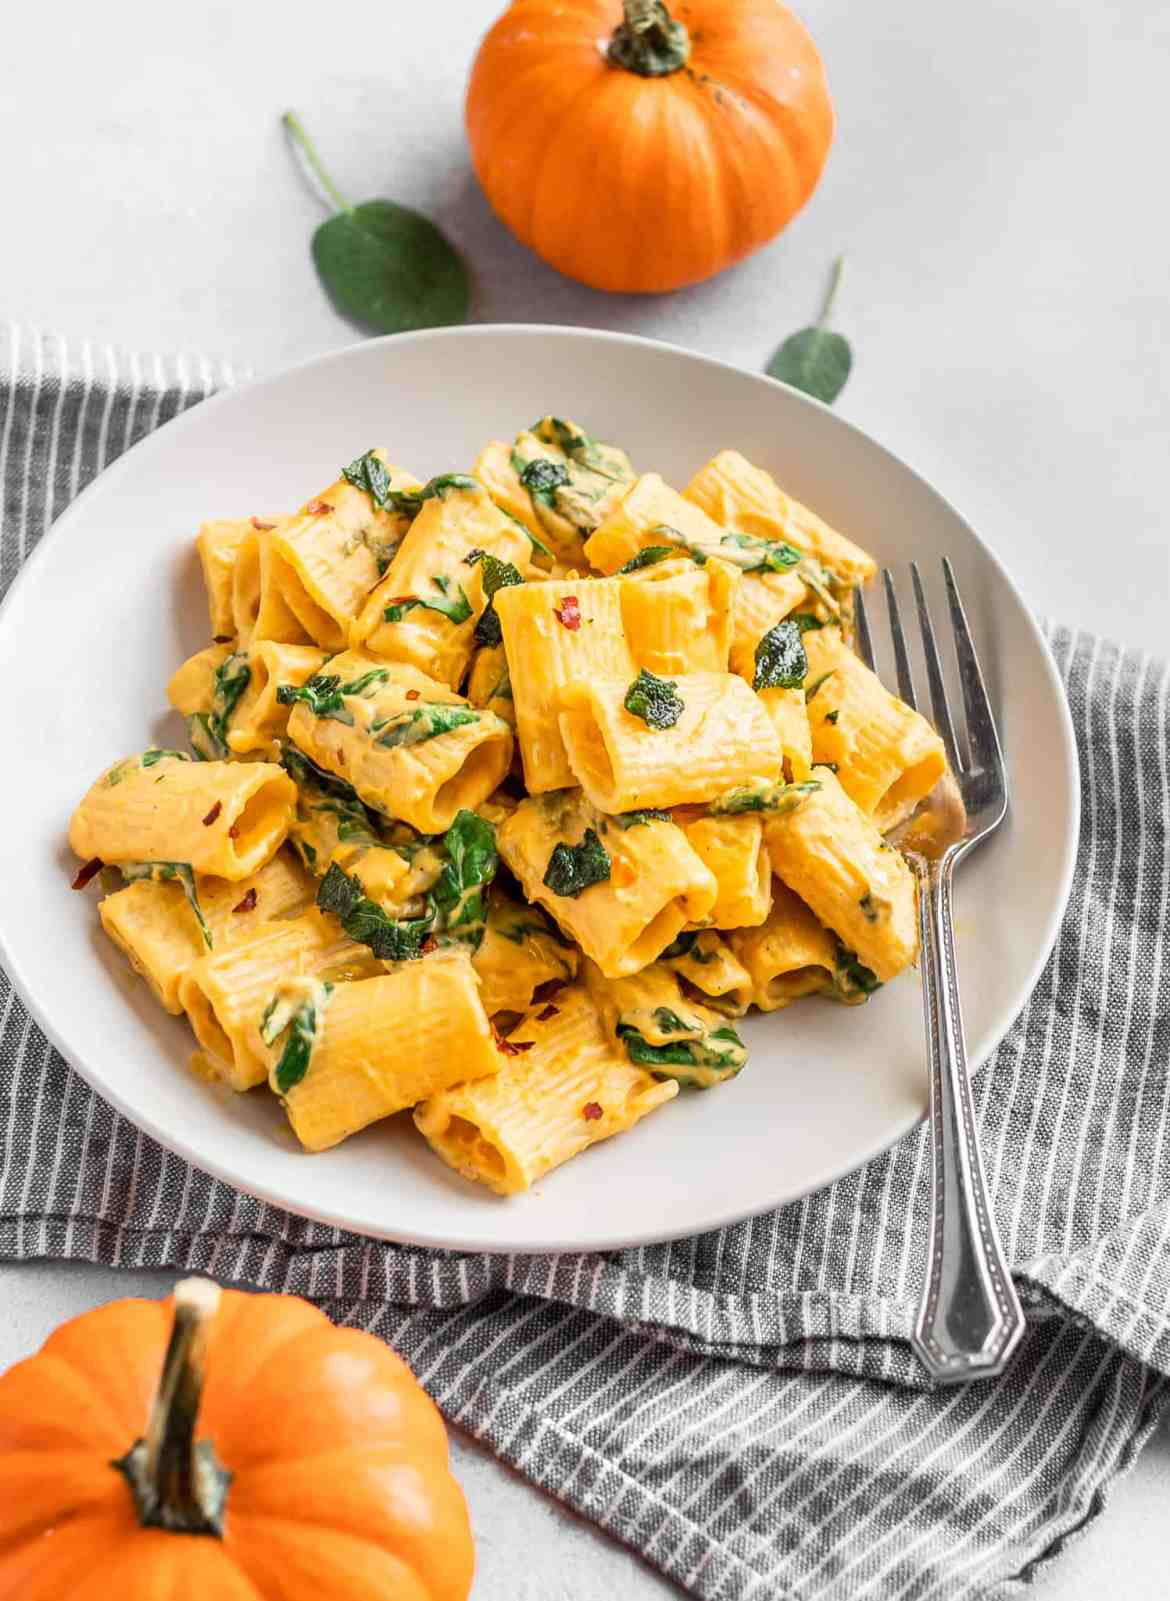 Roasted-Cherry-Tomato-&-Pumpkin-Rigatoni by @eatlovenamaste